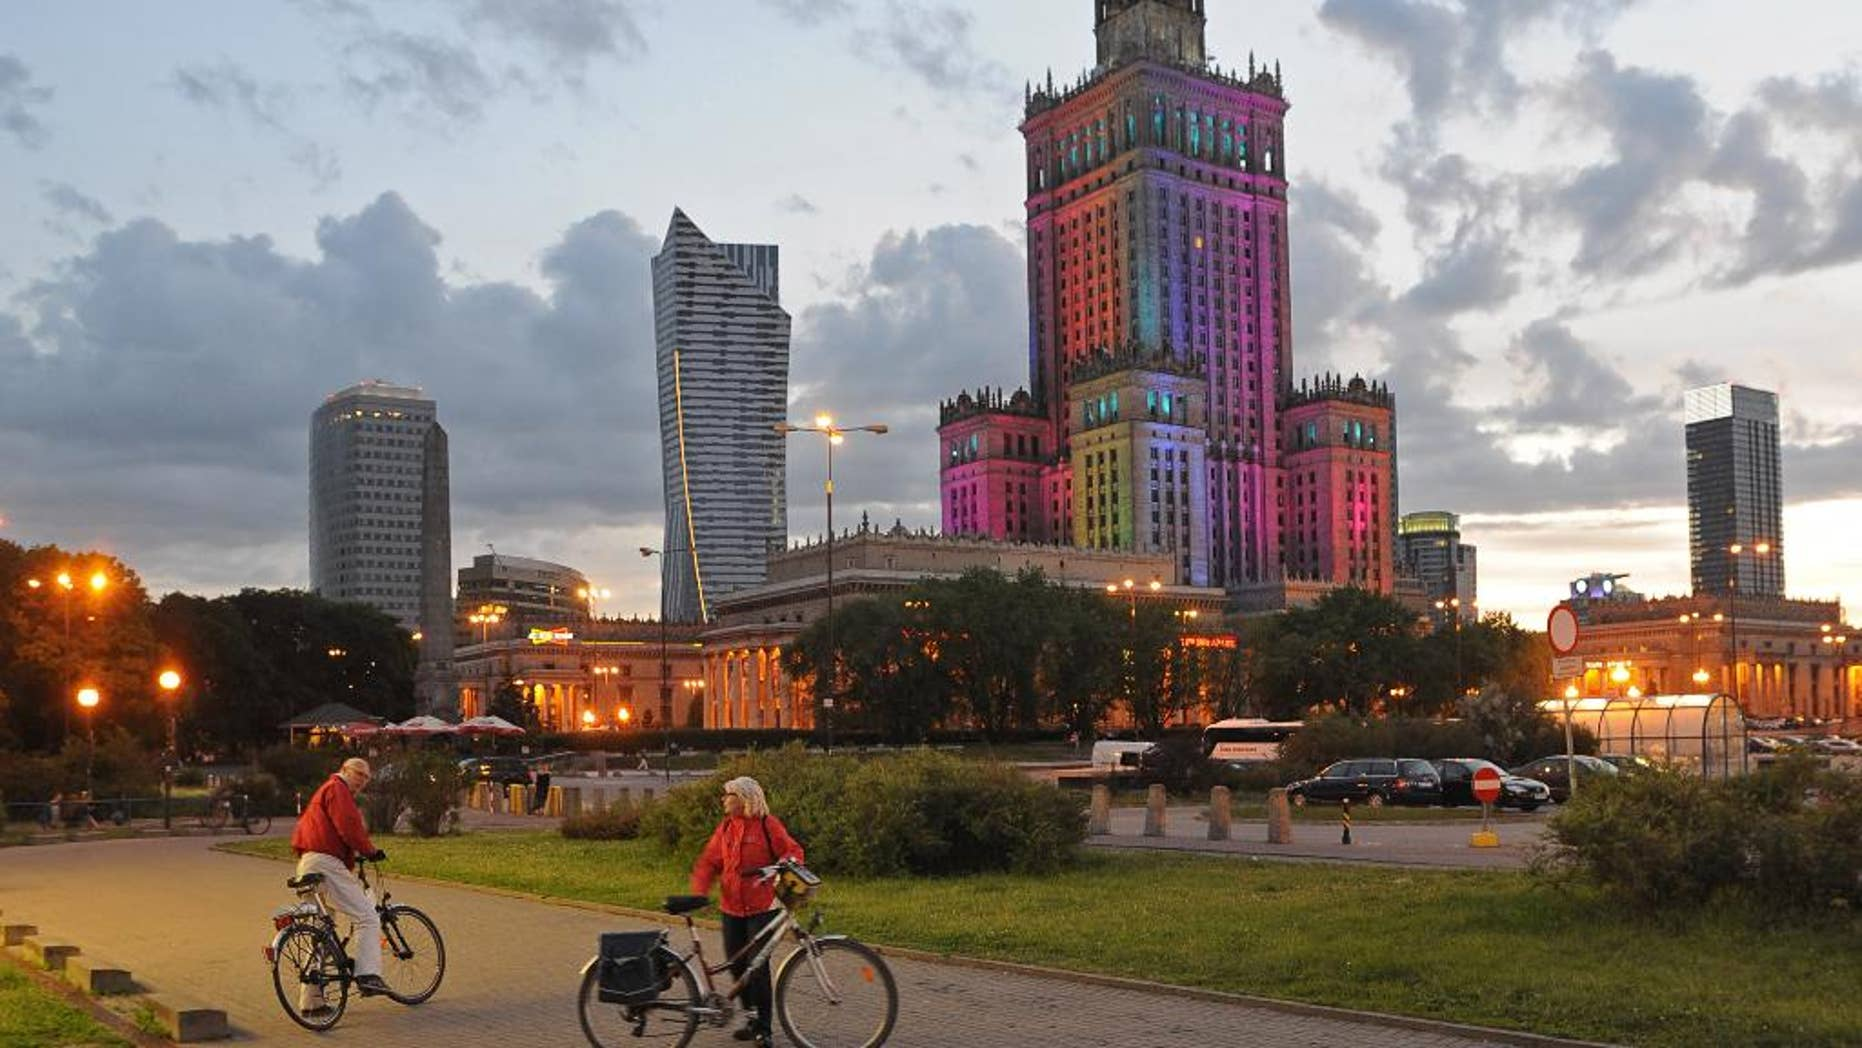 The communist era Palace of Culture, colorfully illuminated, is surrounded by modern skyscrapers, in Warsaw, Poland, Saturday, May 31, 2014. (AP Photo/Alik Keplicz)